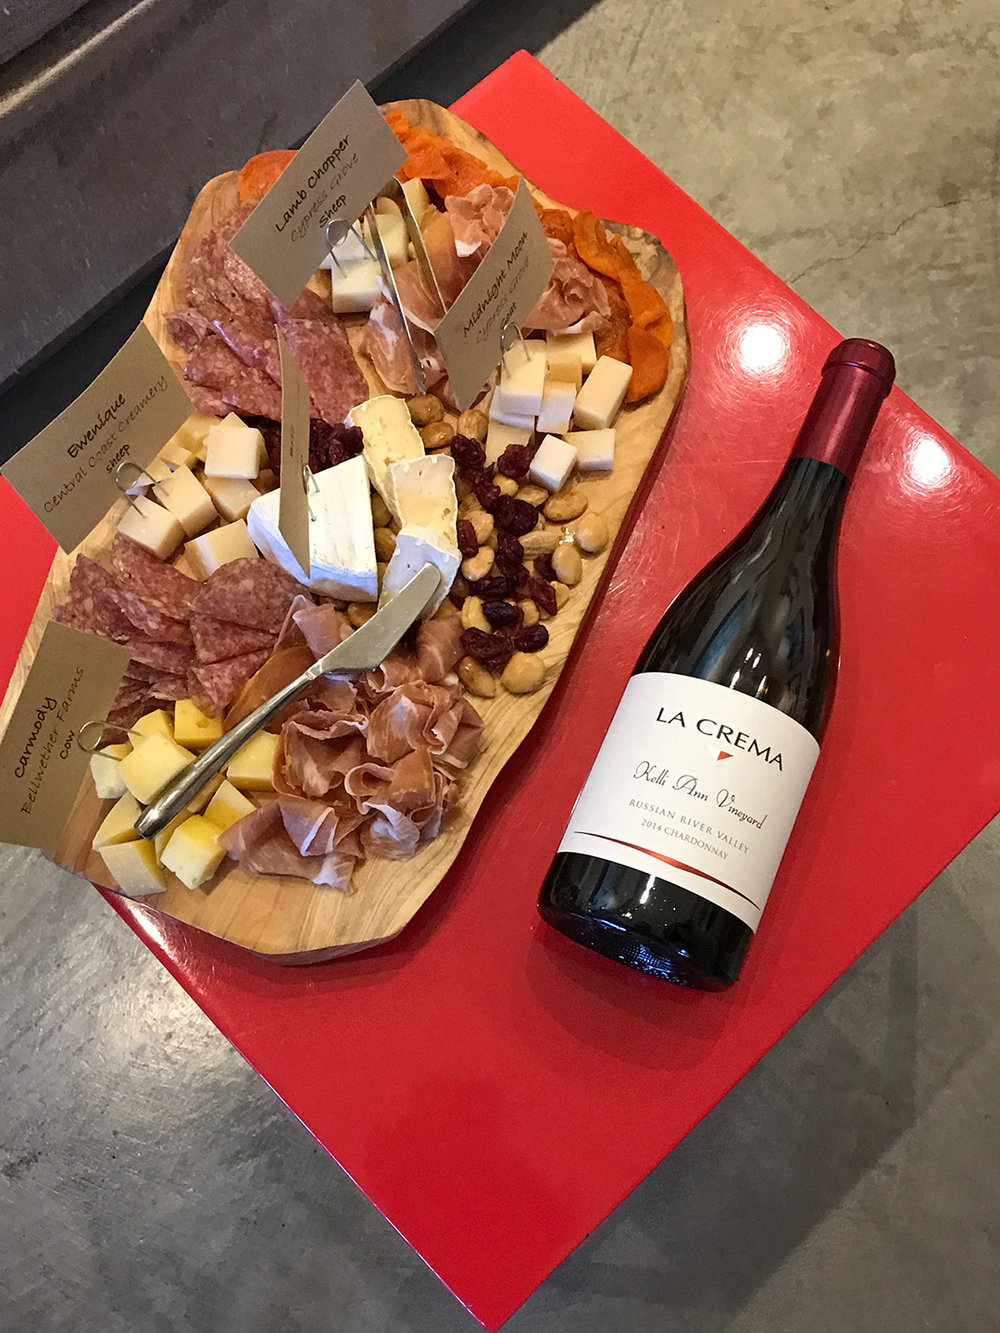 The charcuterie and cheese place guests were welcomed with. This paired deliciously wit the Russian River 2014 La Crema Chardonnay.